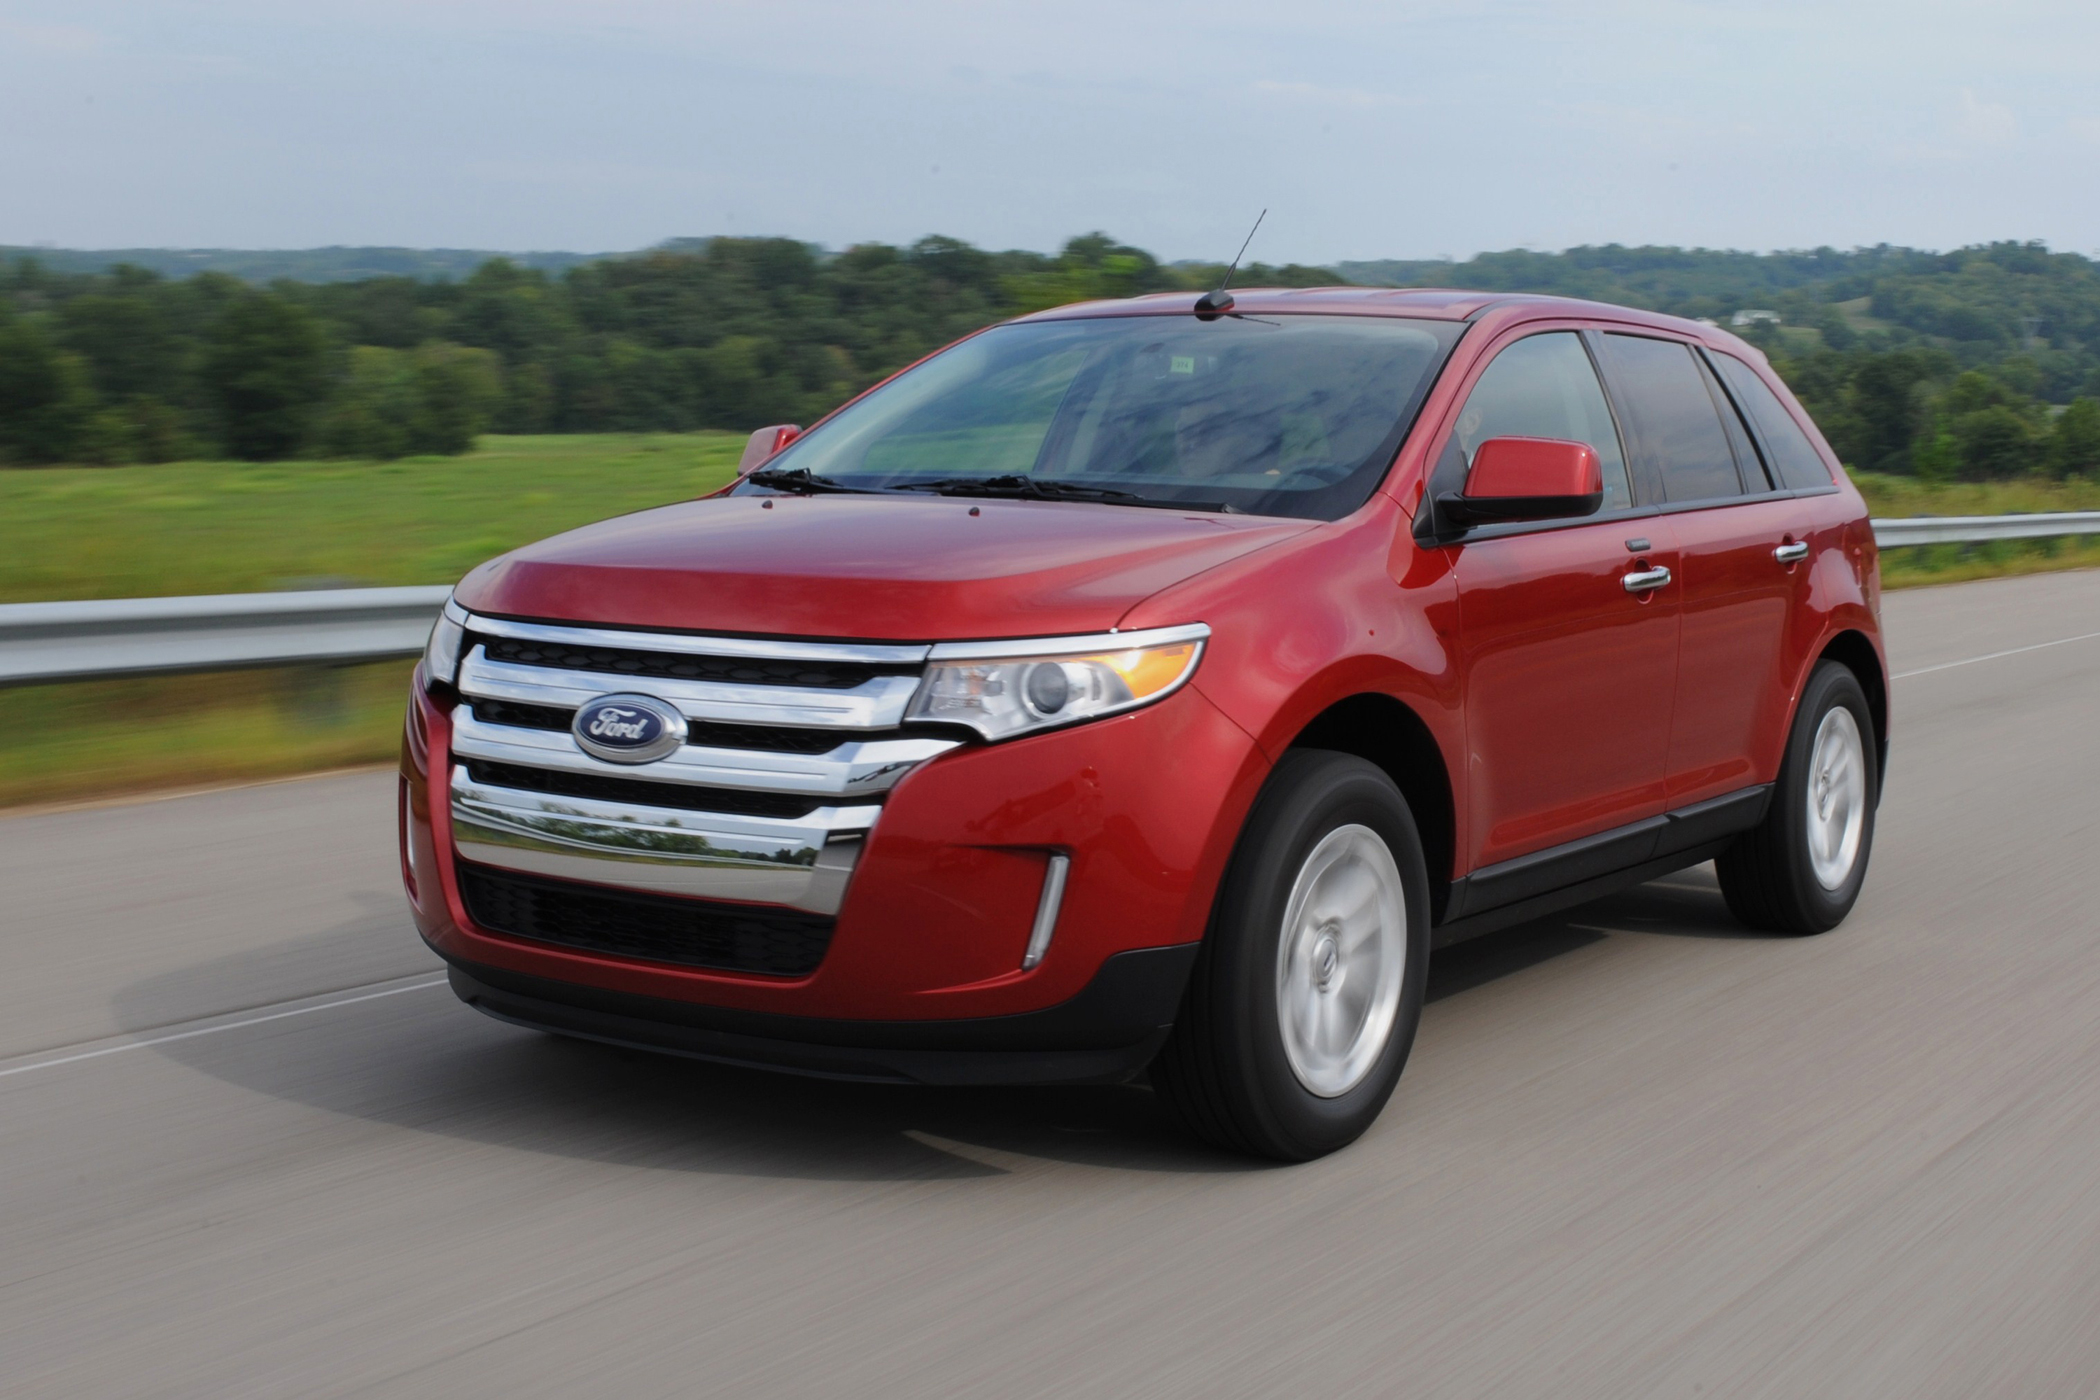 Ford Edge is Revamped for 2011 in Looks and Technology Bonus